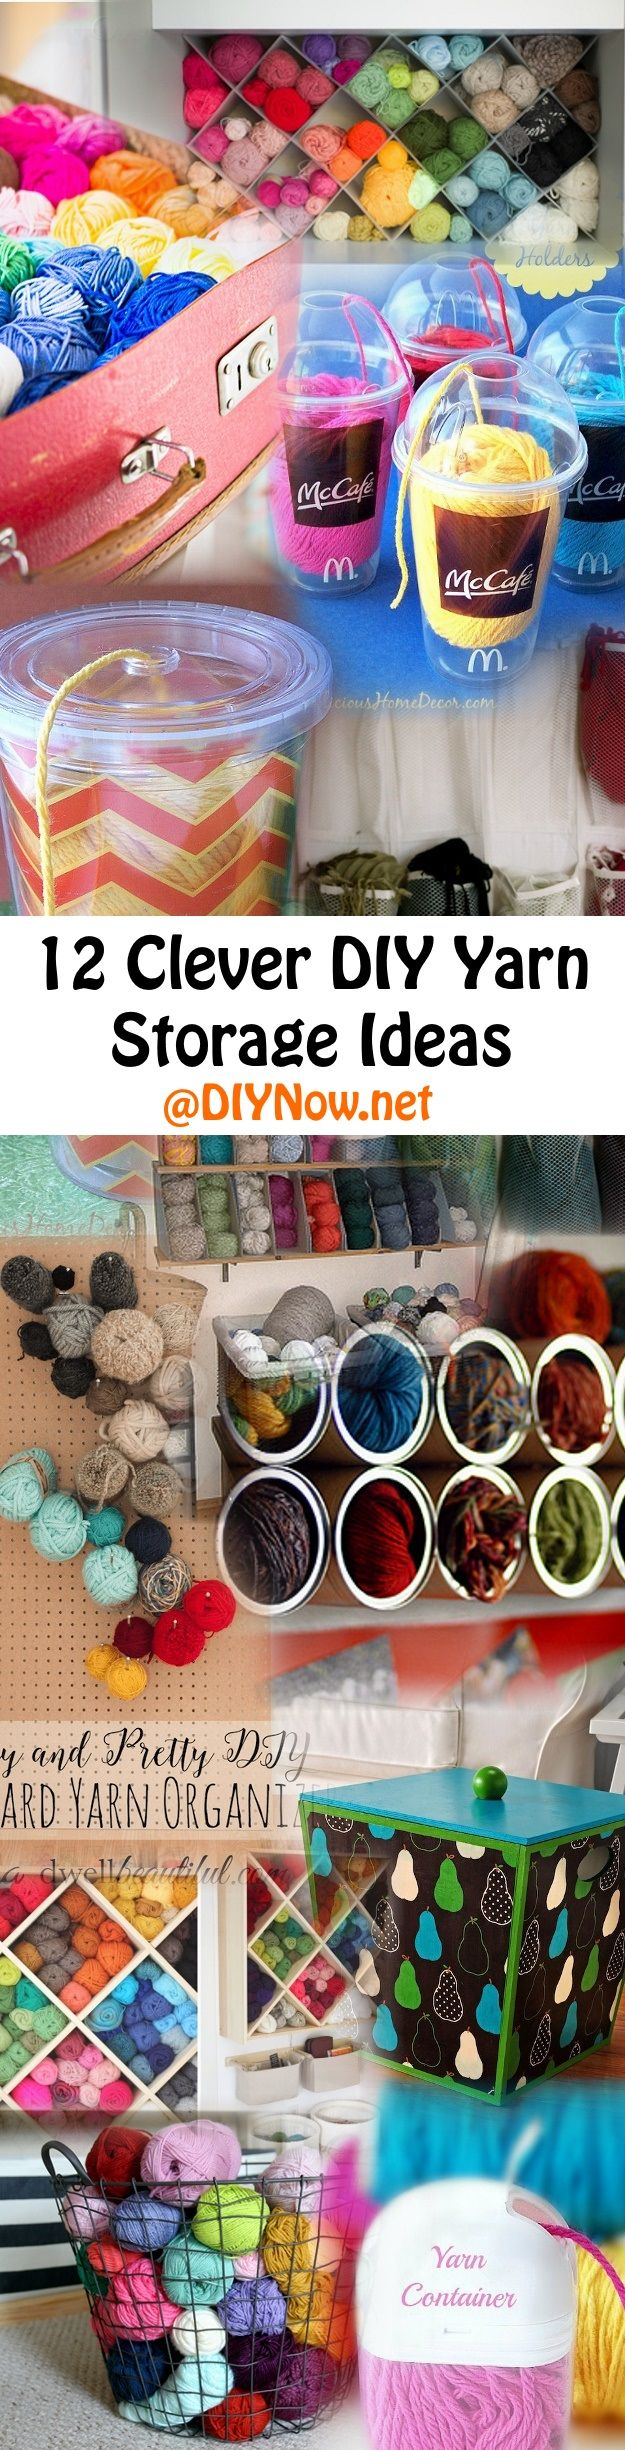 Ordinaire 12 Clever DIY Yarn Storage Ideas